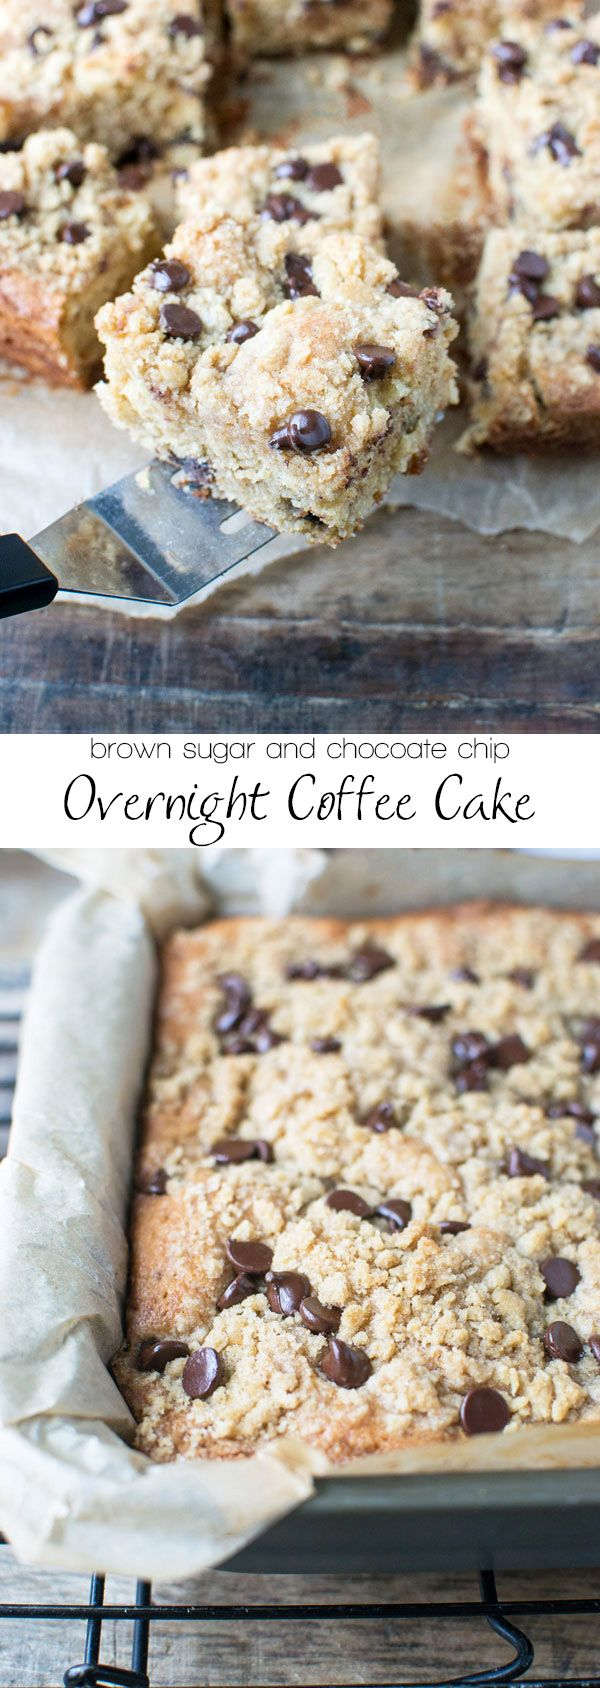 Chocolate Chip Coffee Cake with Streusel Topping